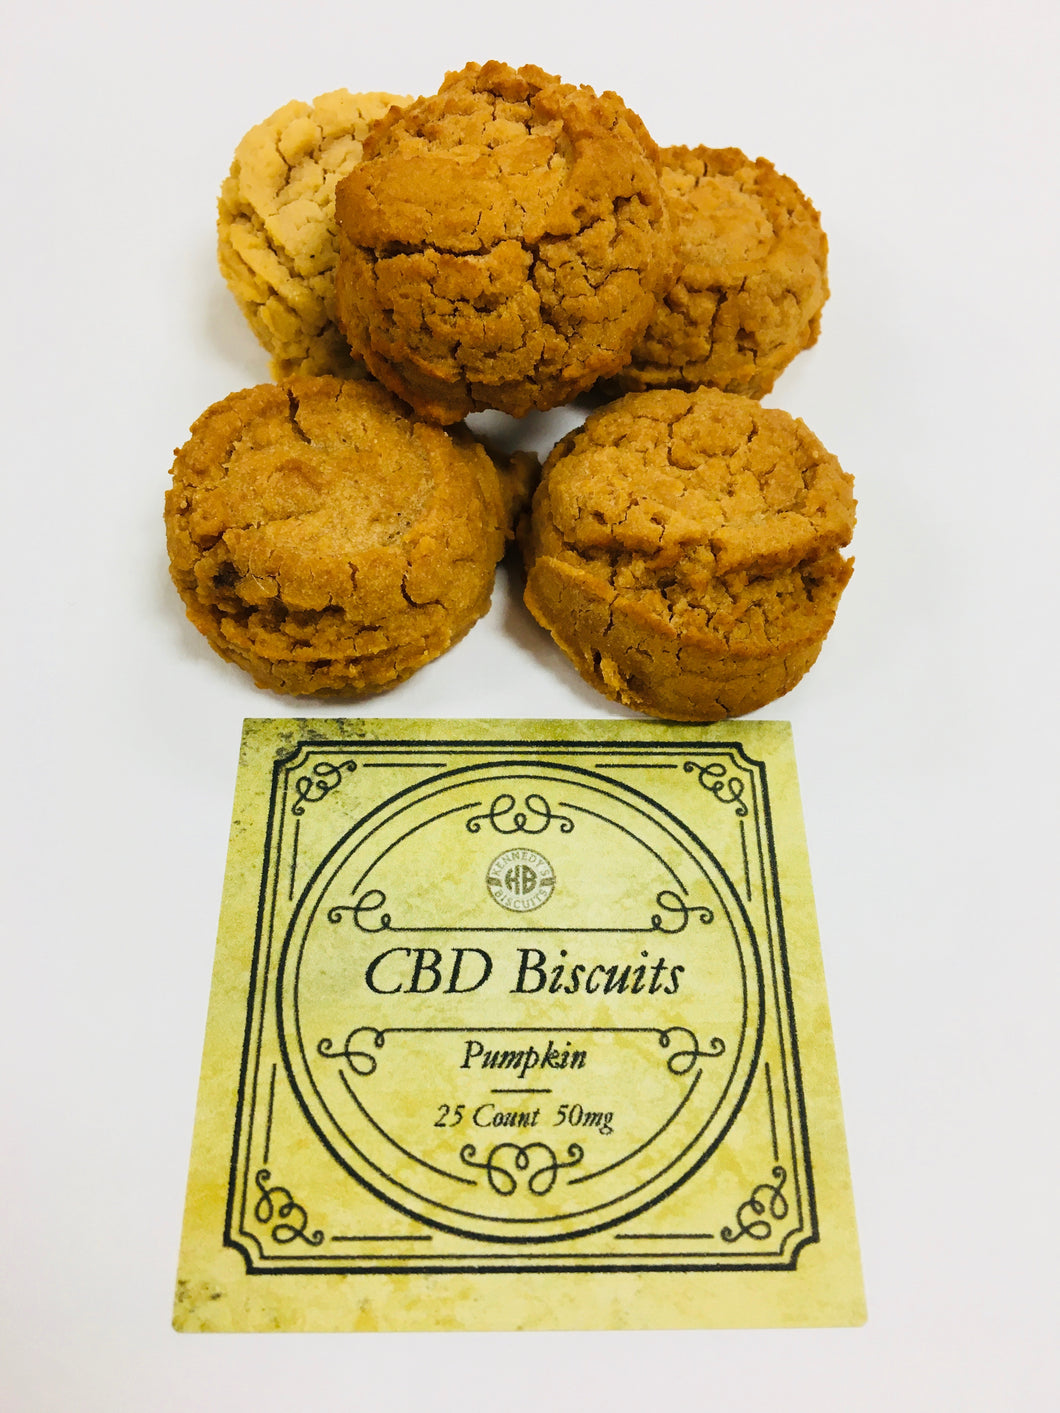 Pumpkin CBD Dog Biscuits